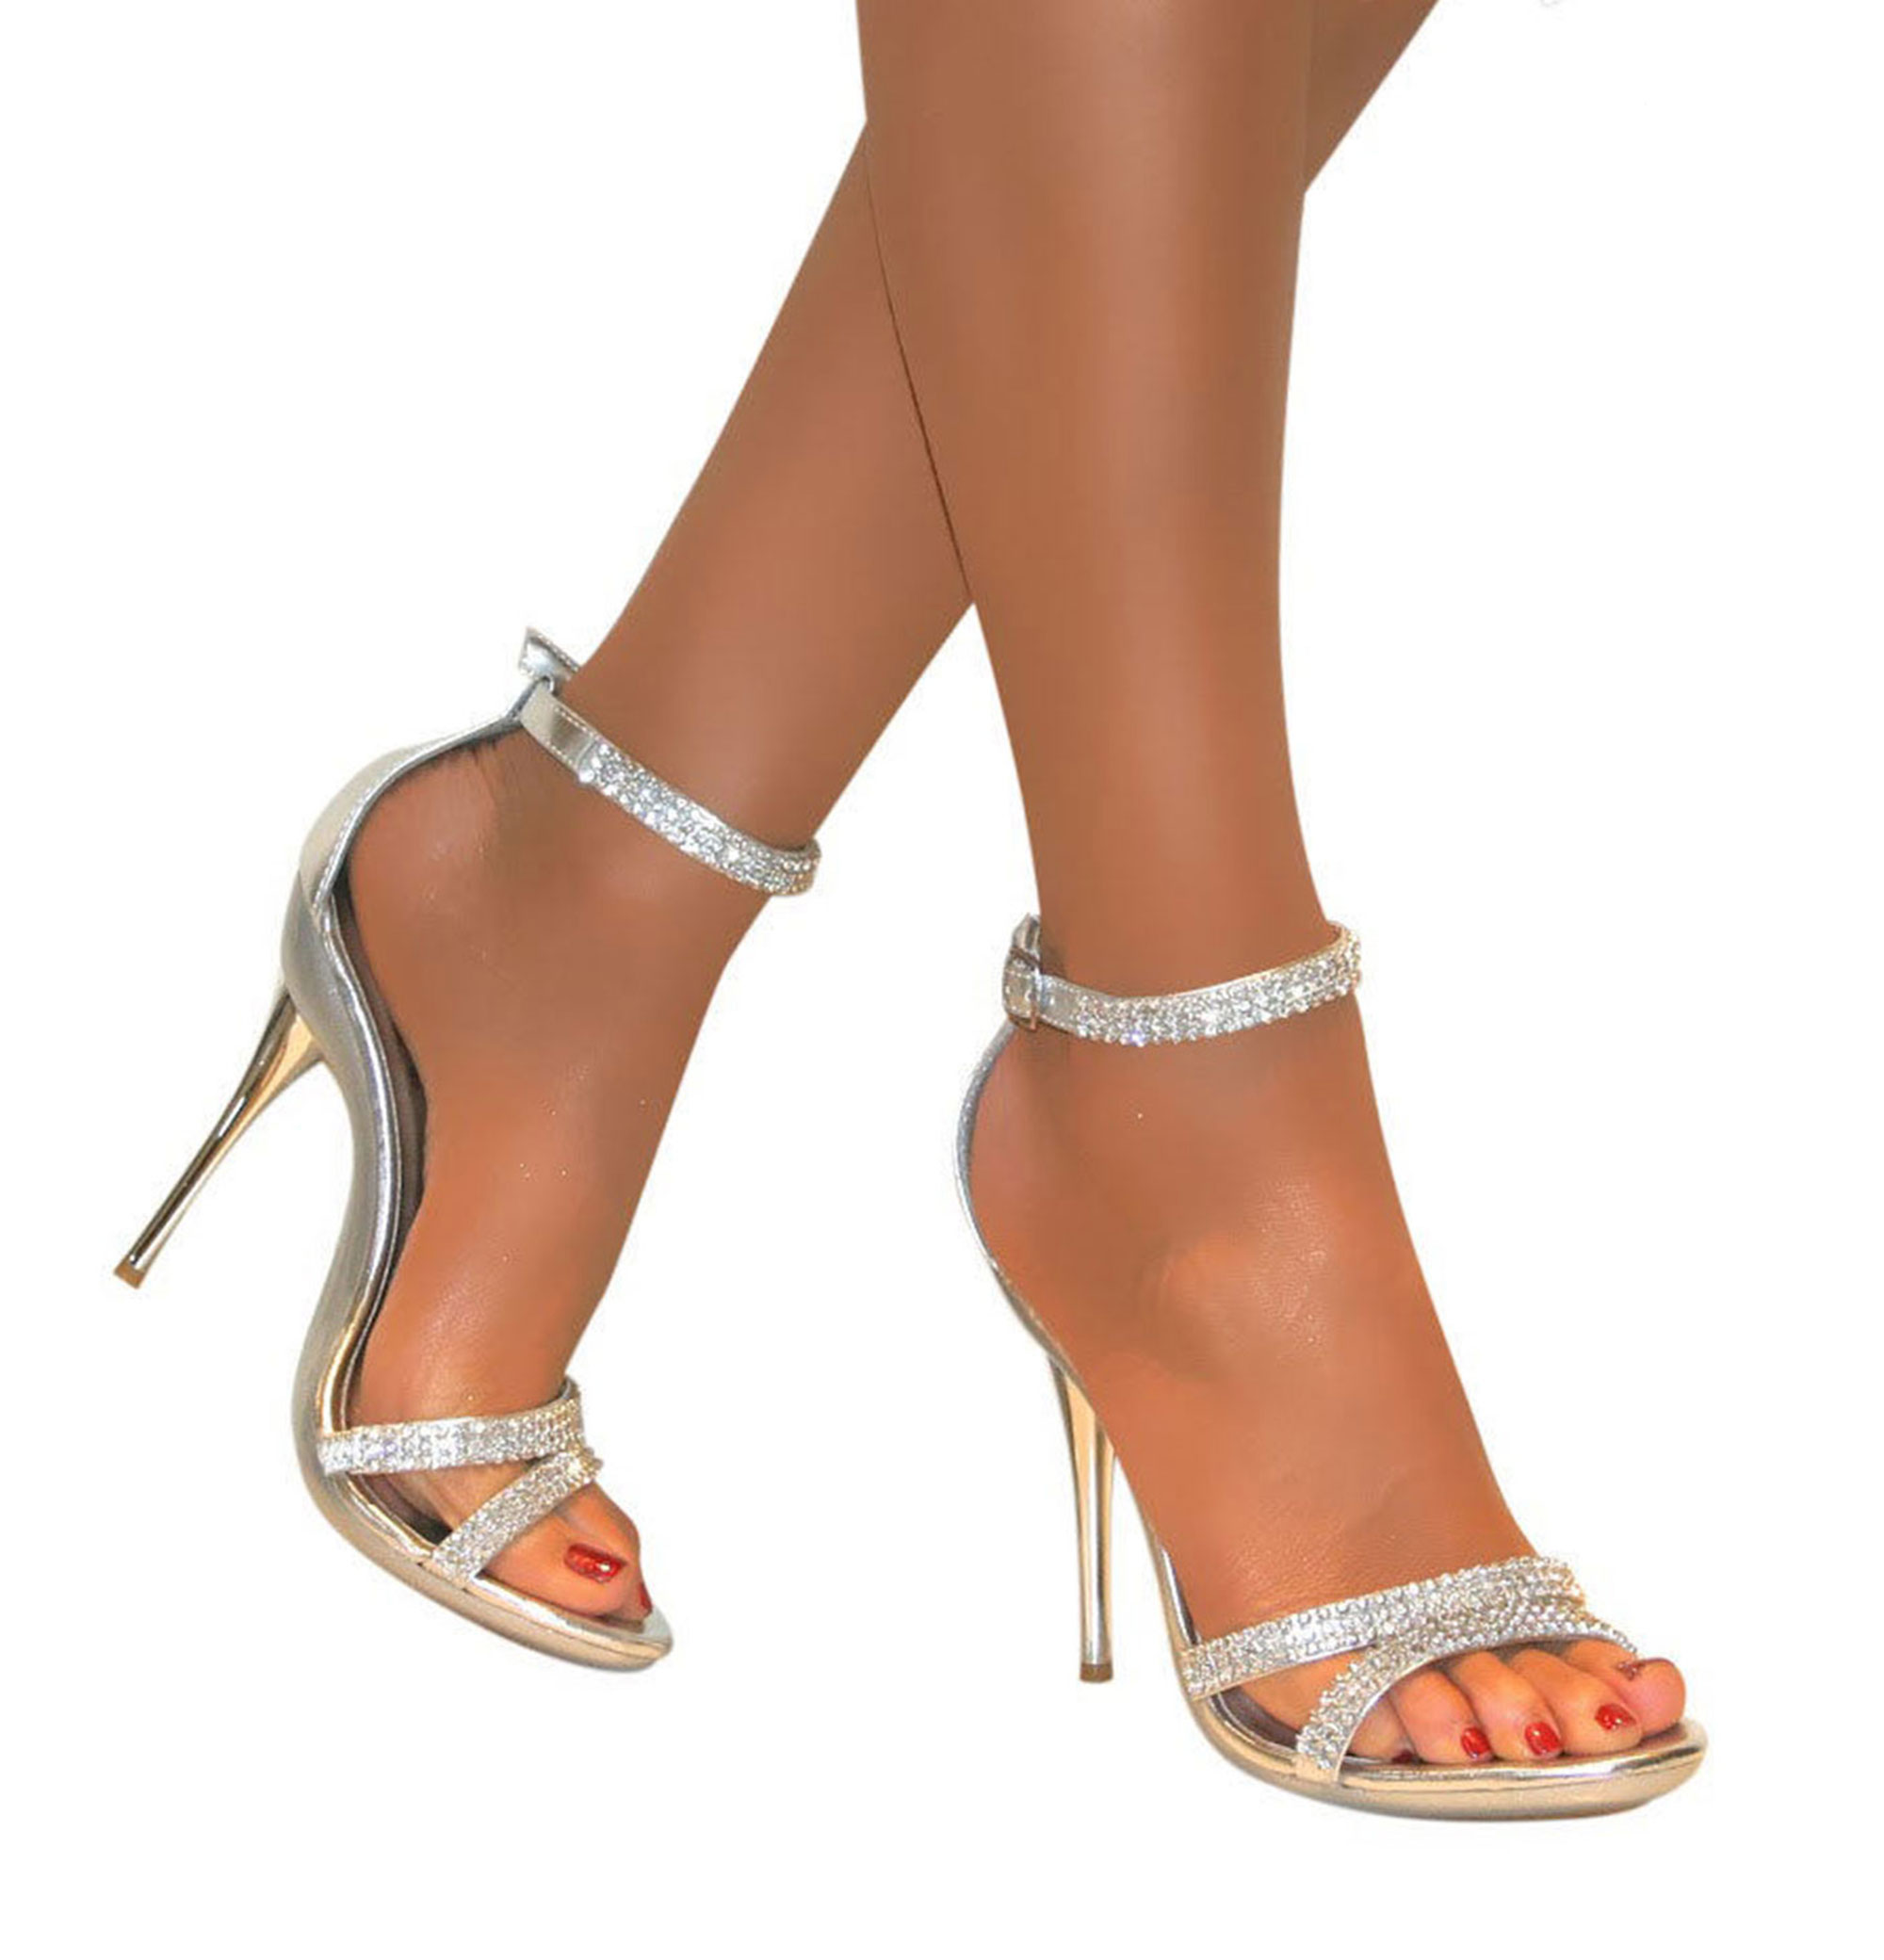 silver heels for wedding LADIES DIAMANTE SILVER STRAPPY ANKLE SANDALS SHOES HEELS WEDDING BRIDAL SIZE 3 8